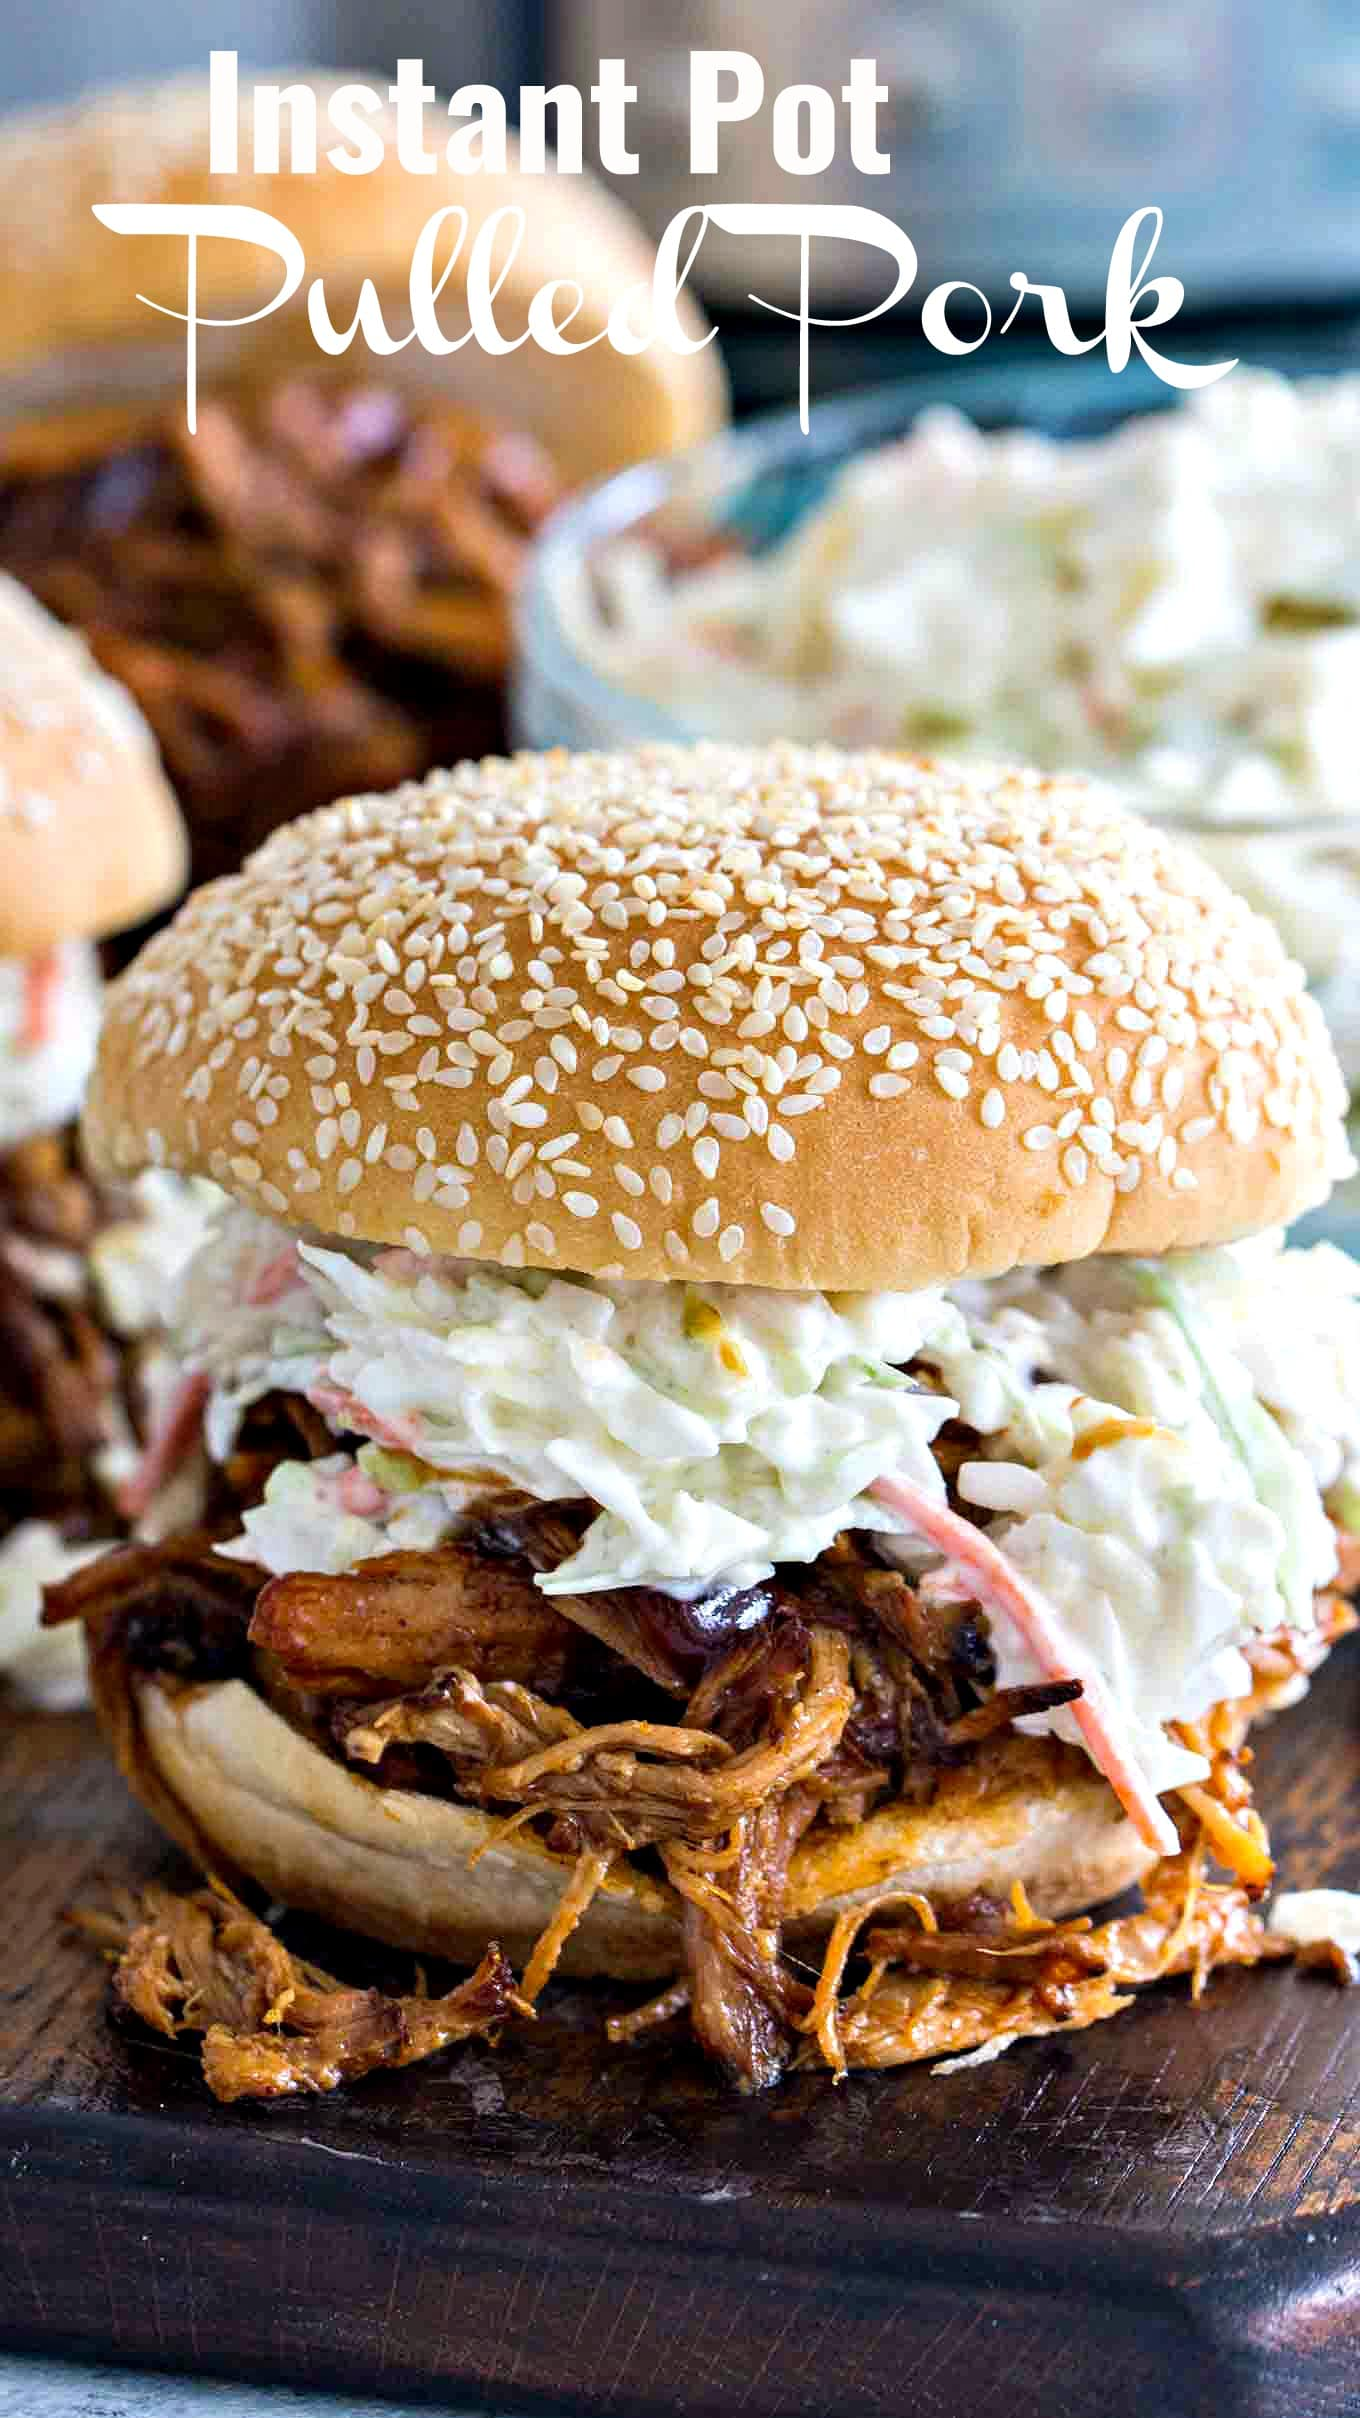 Instant Pot Pressure Cooker Pulled Pork